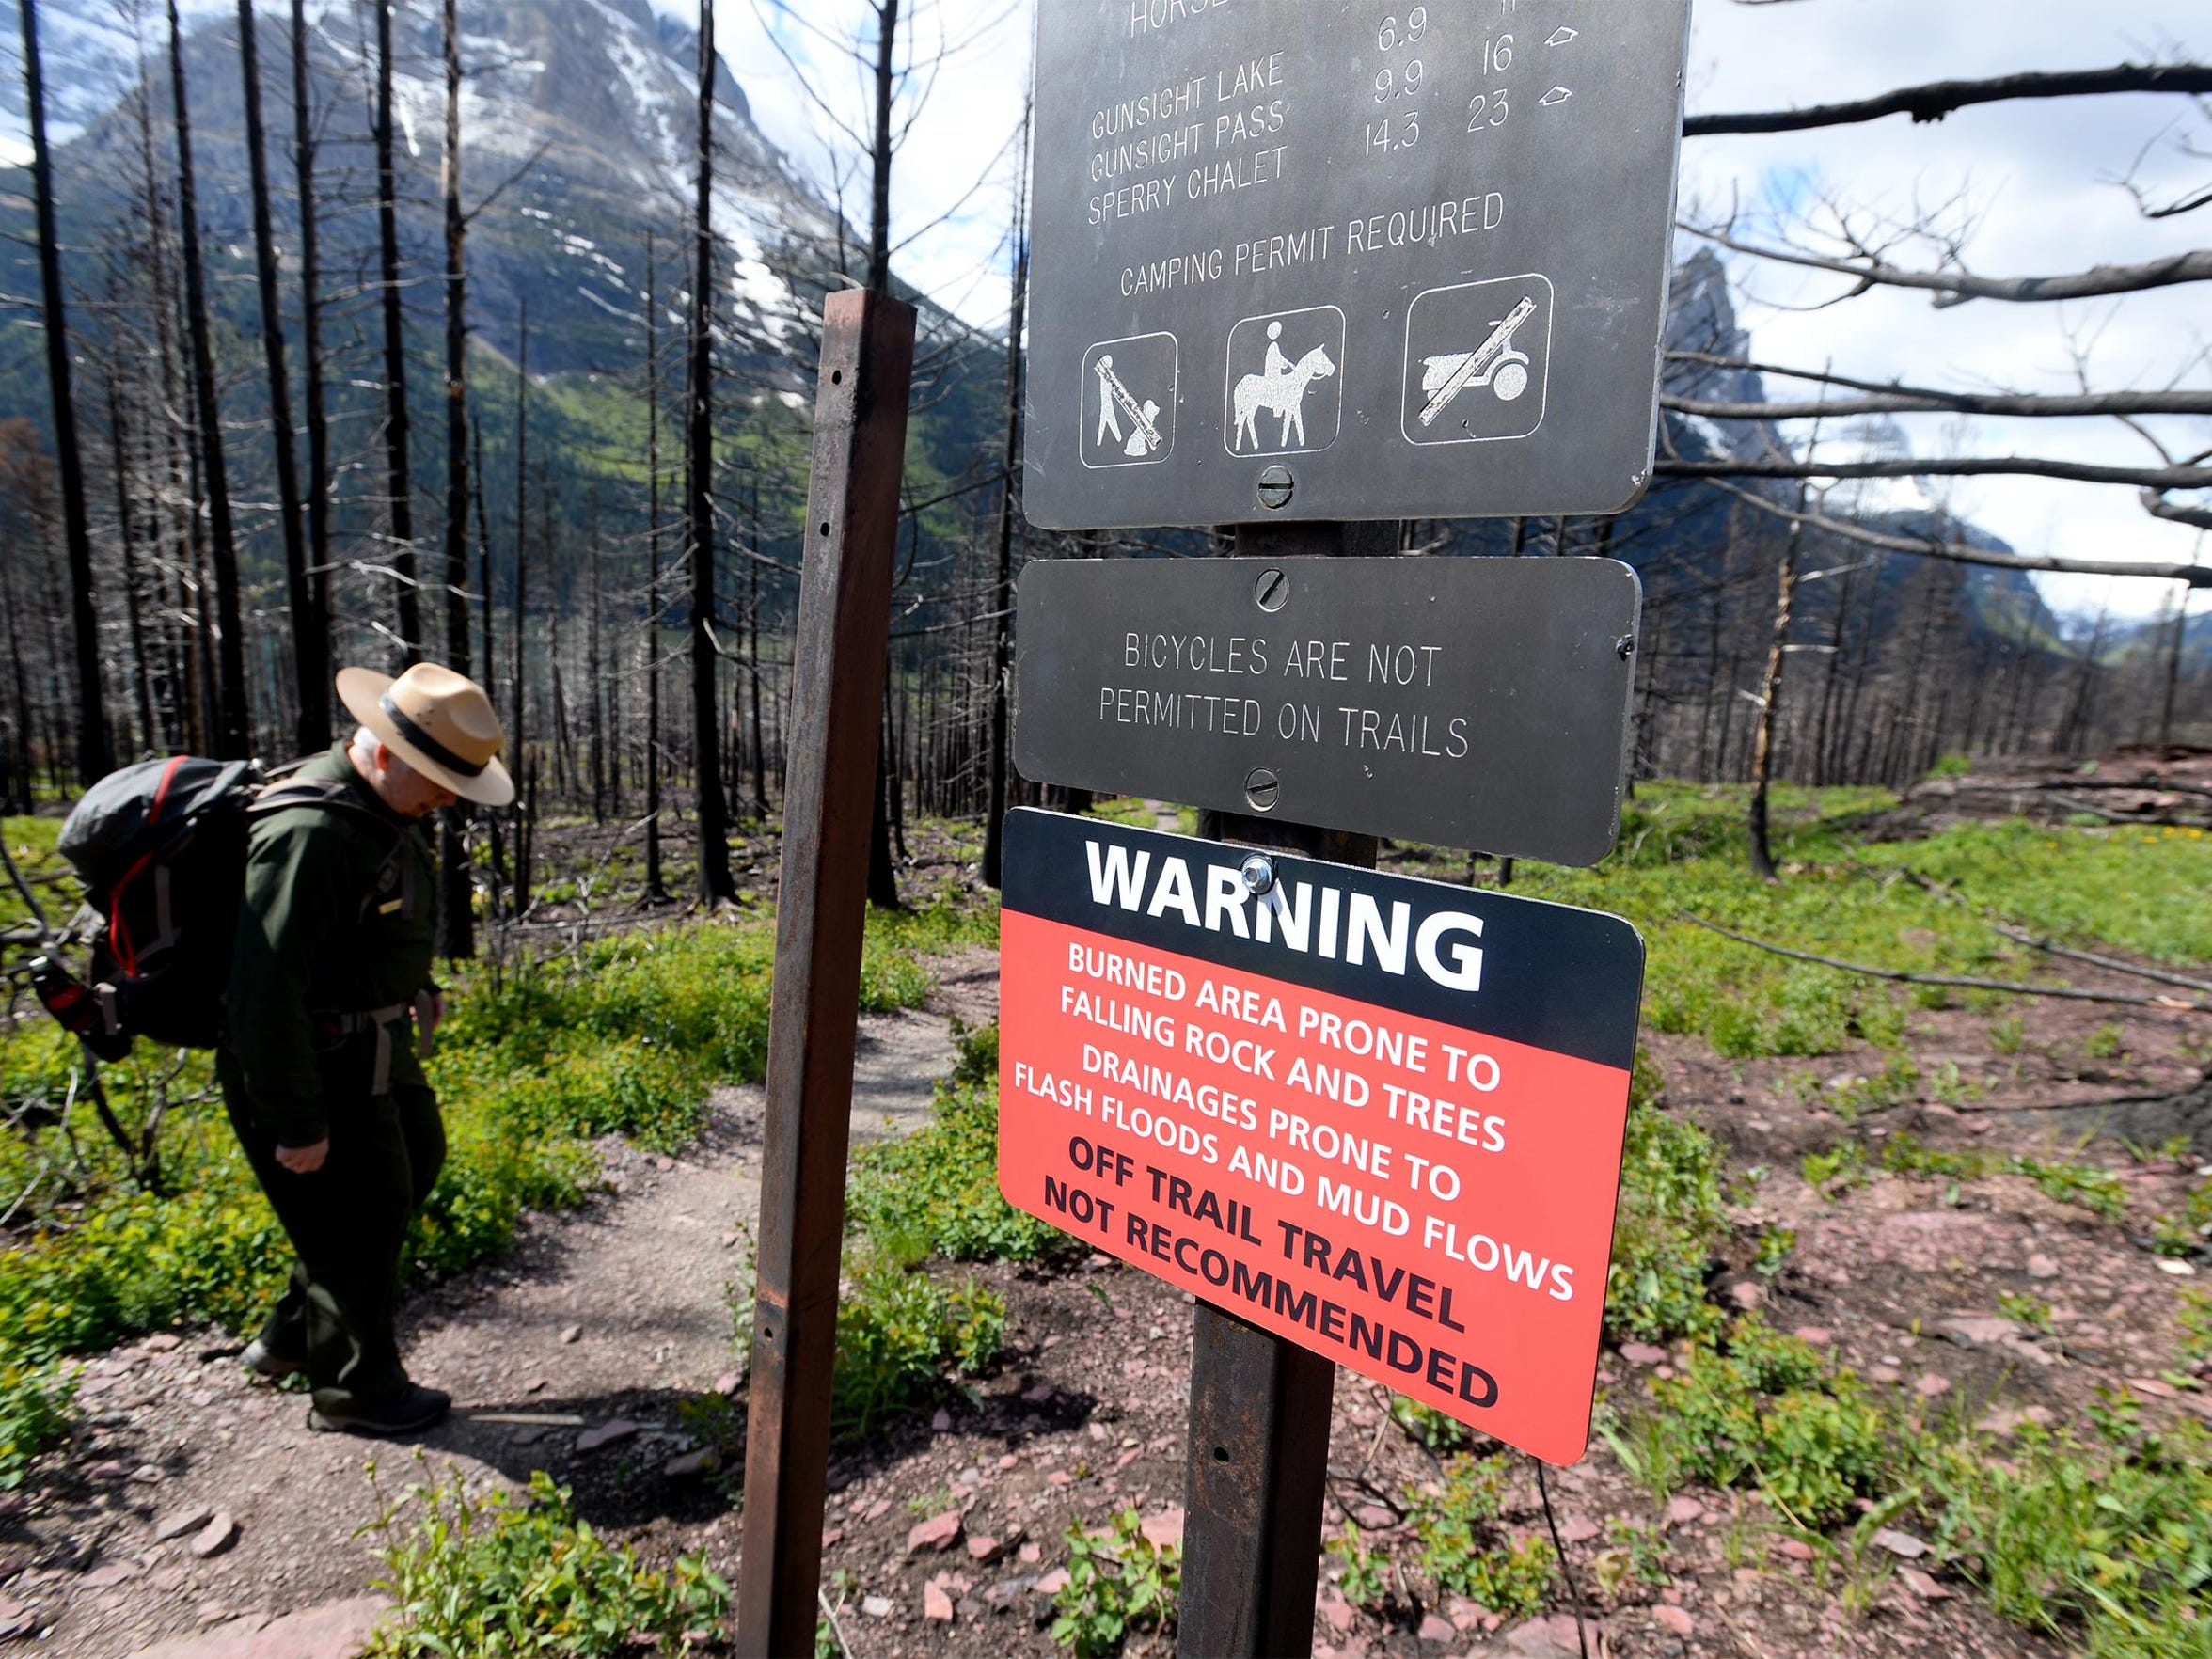 The Reynold's Creek Fire in Glacier National Park opened